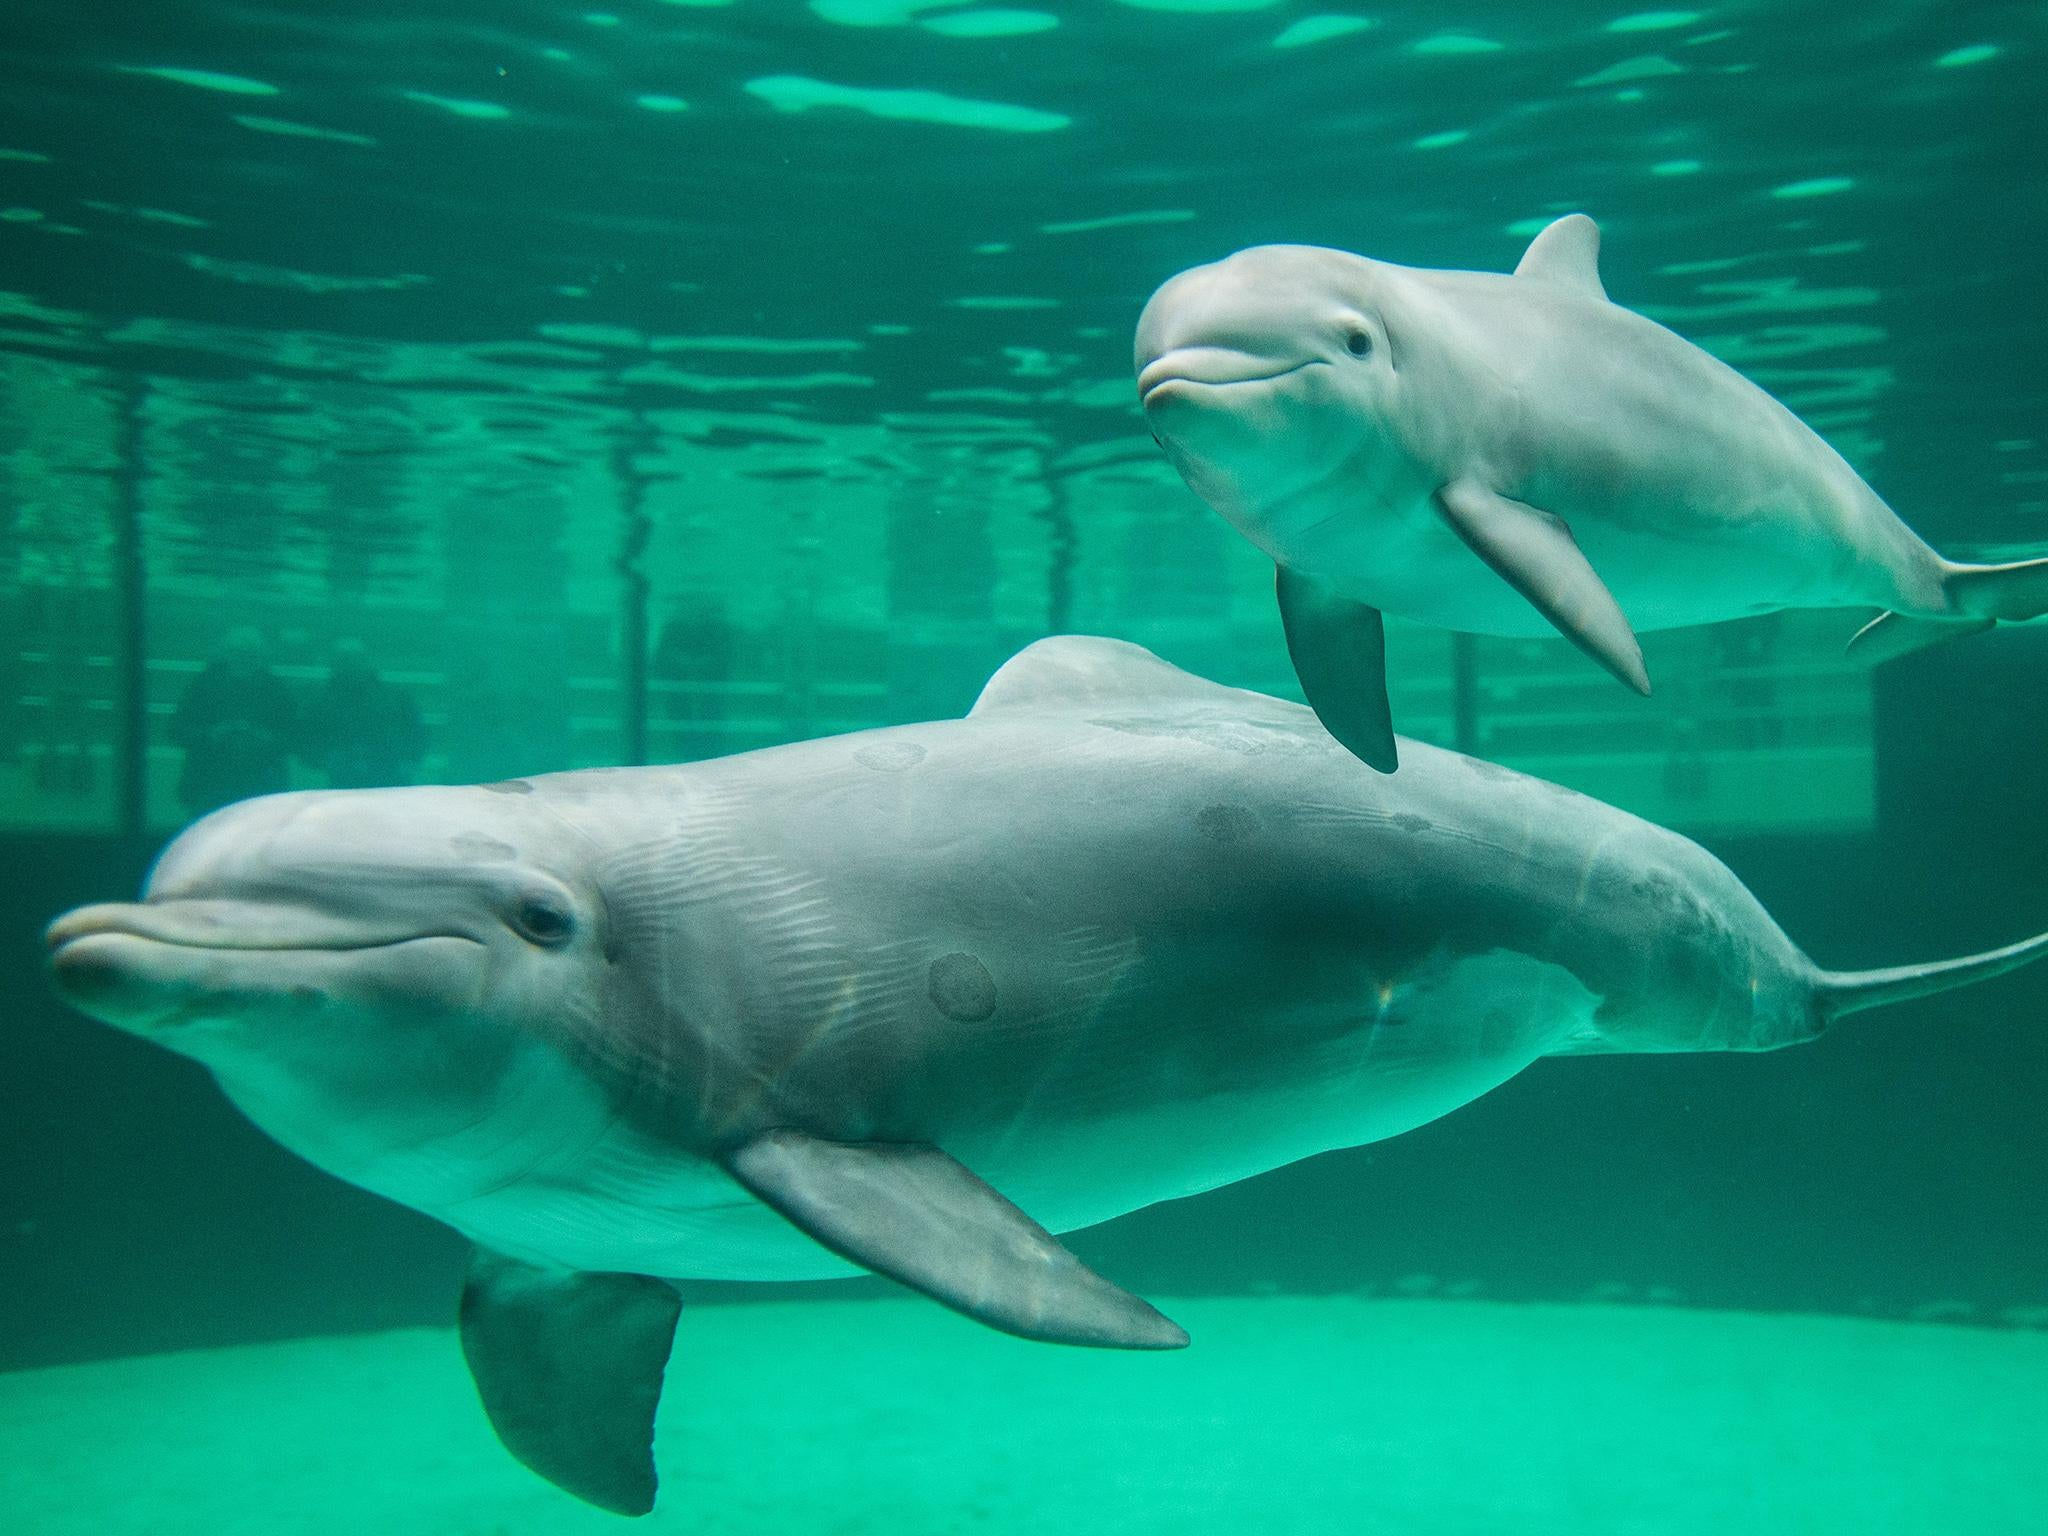 dolphins escape sea park in japanese town infamous for brutal